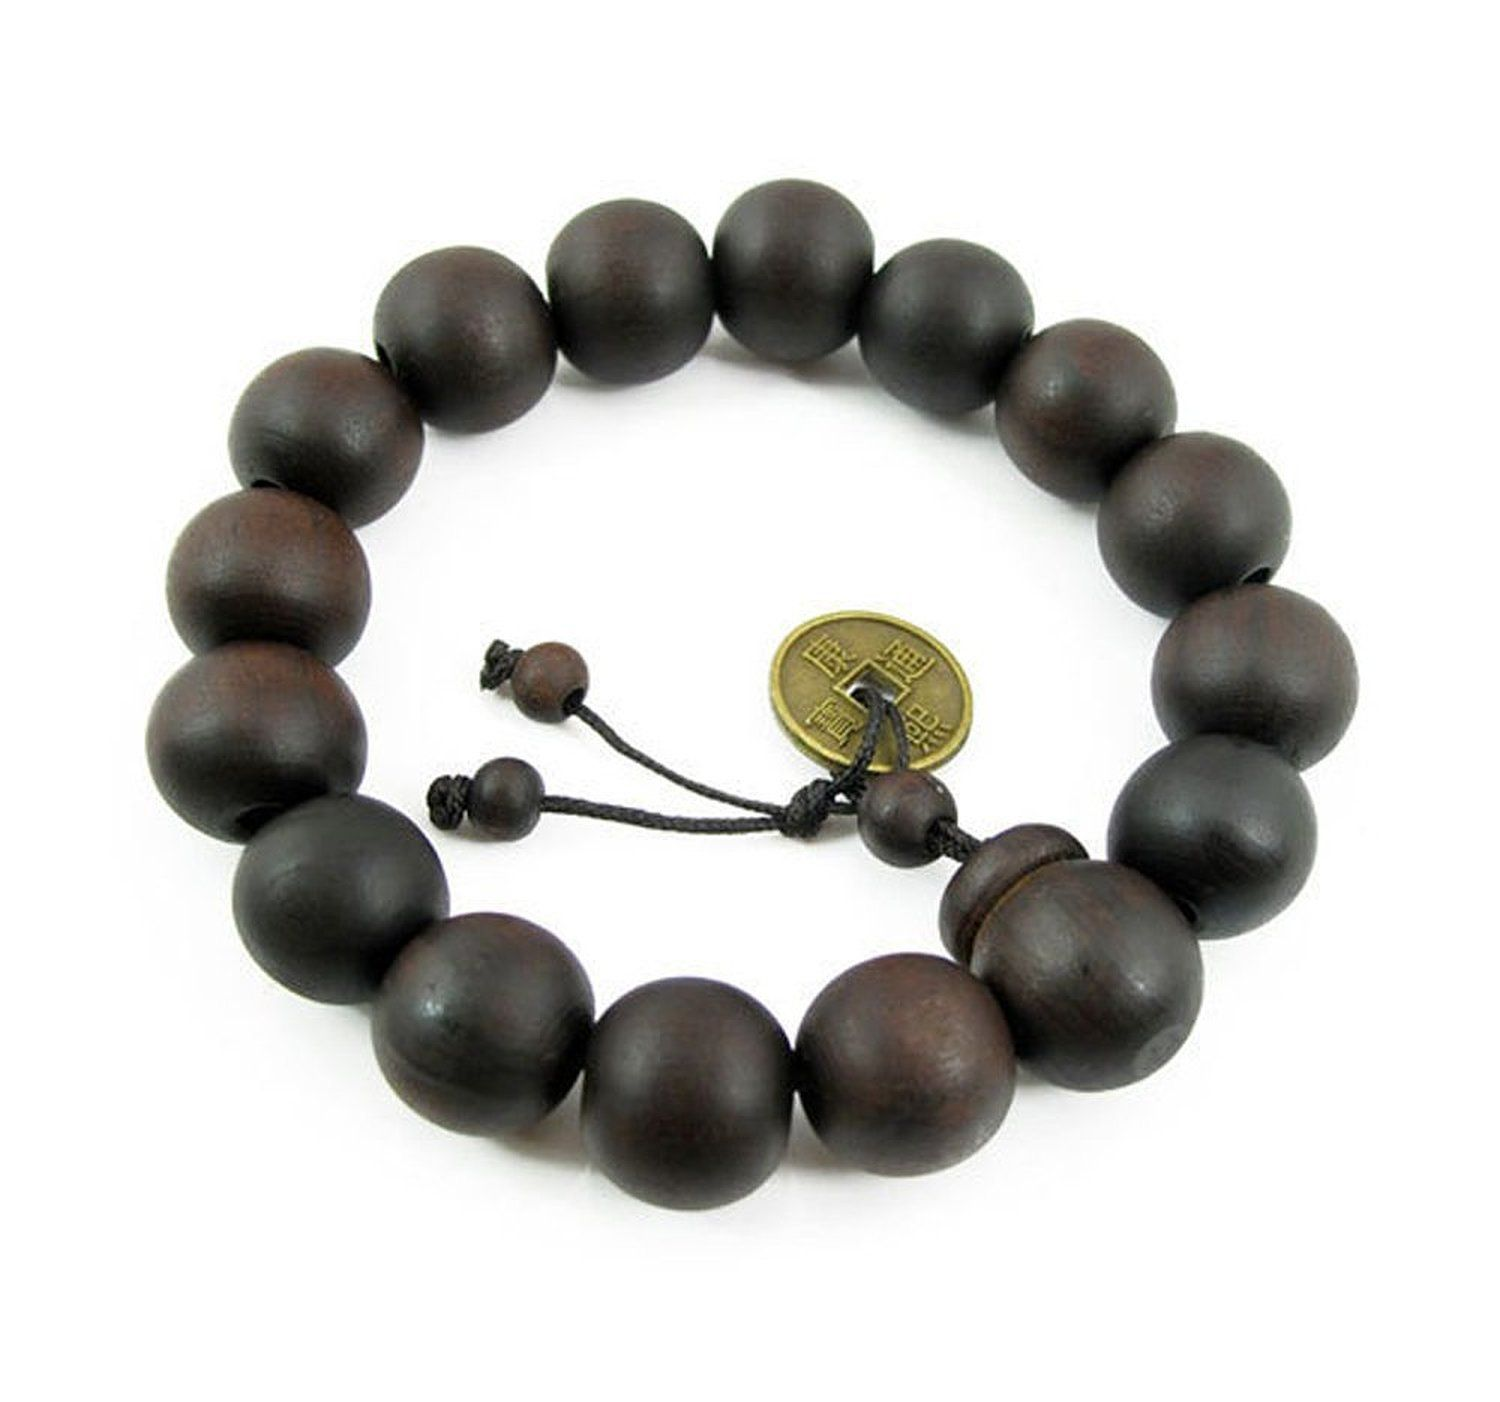 CrazyPiercing Feng Shui Coin with Tibetan Buddha Prayer Mala Black Wood Bracelet G071 >>> You can get more details by clicking on the image.